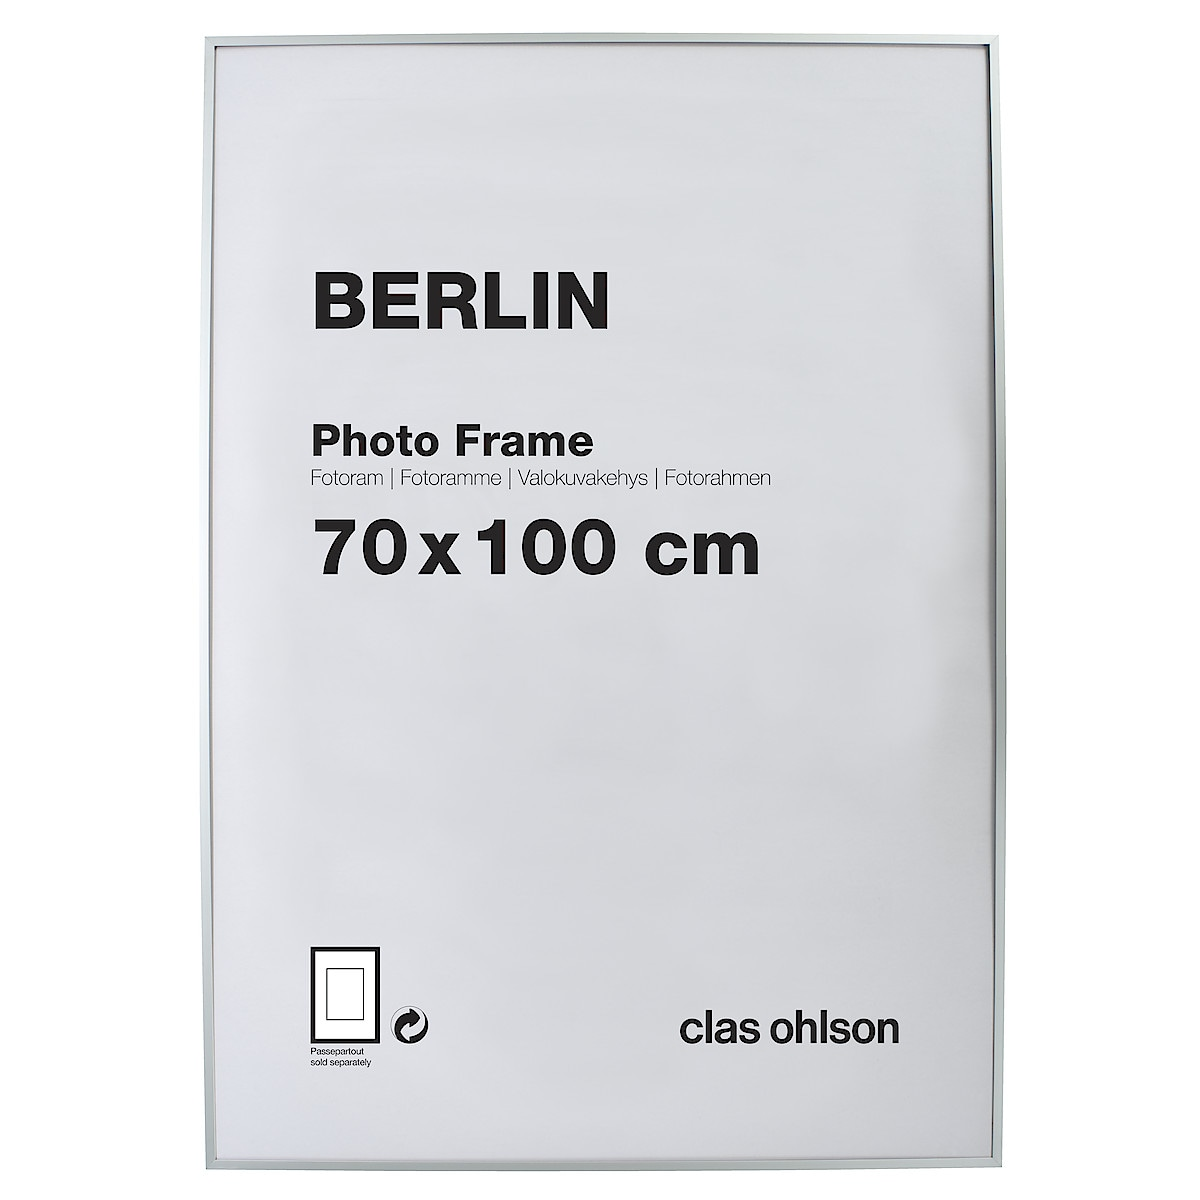 Berlin Photo Frame, silver